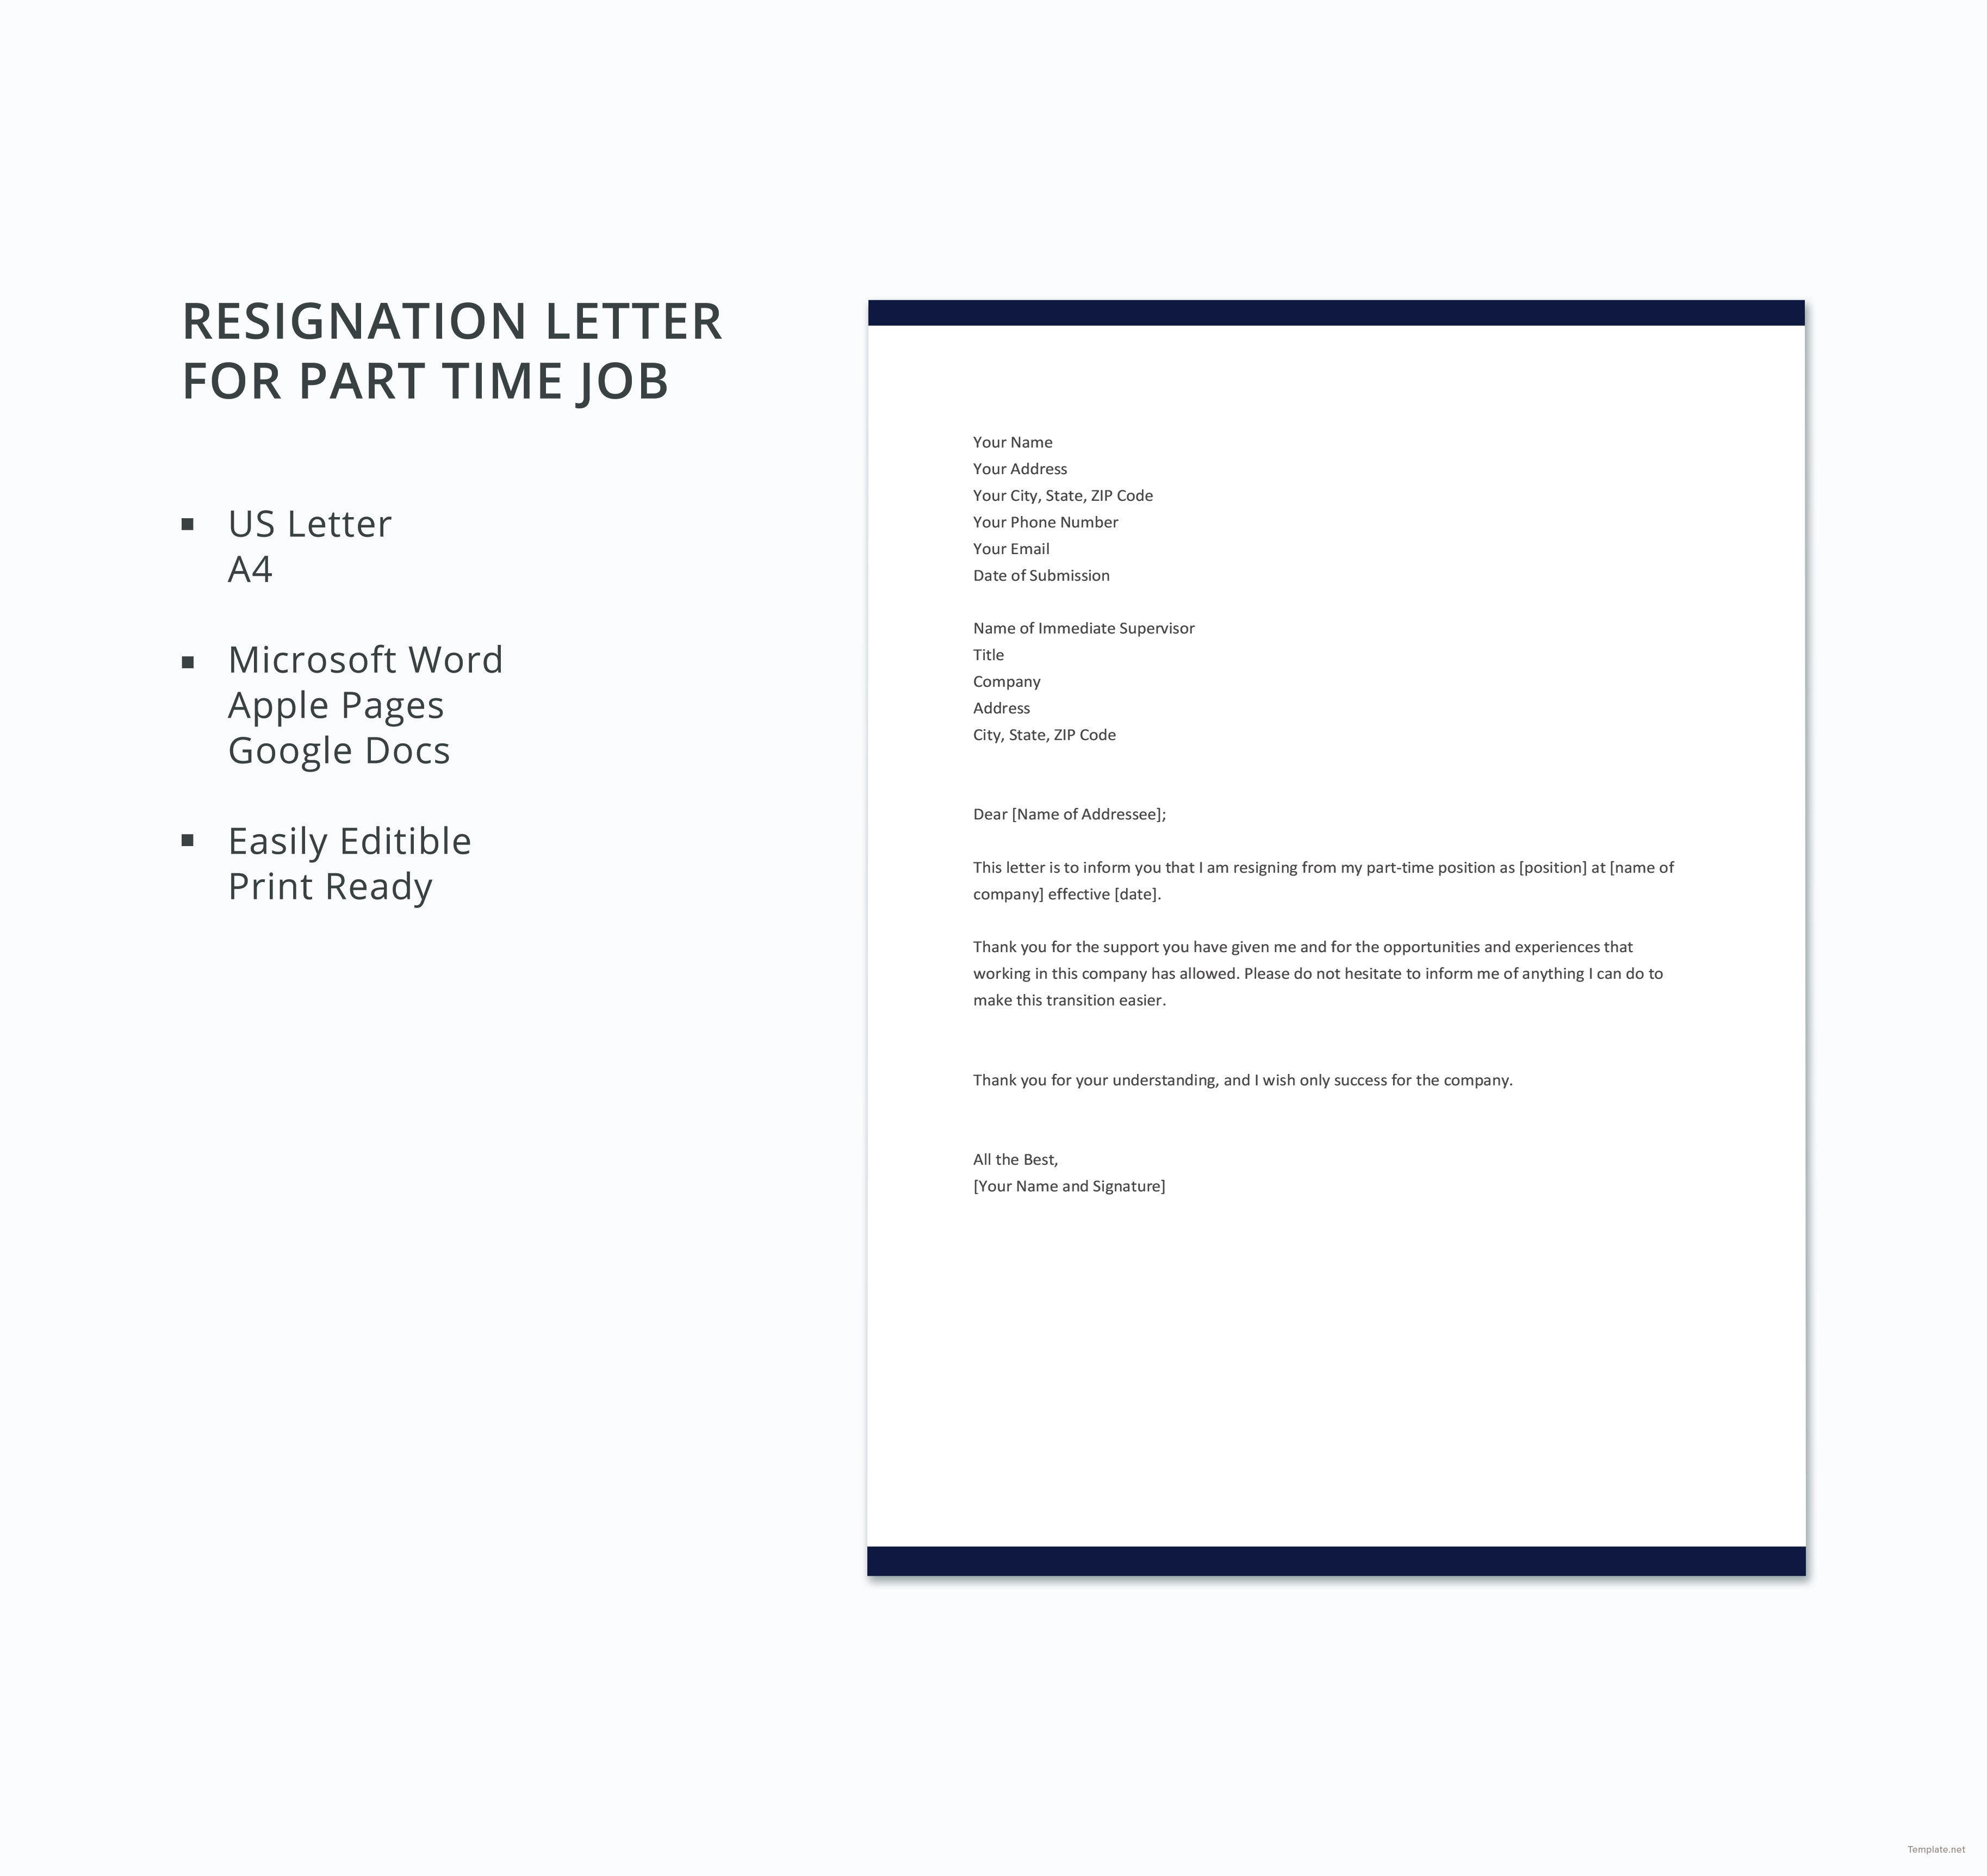 Free Resignation Letter Template Microsoft Word Download - Part Time Job Resignation Letter Inspirationa Free Part Time Job